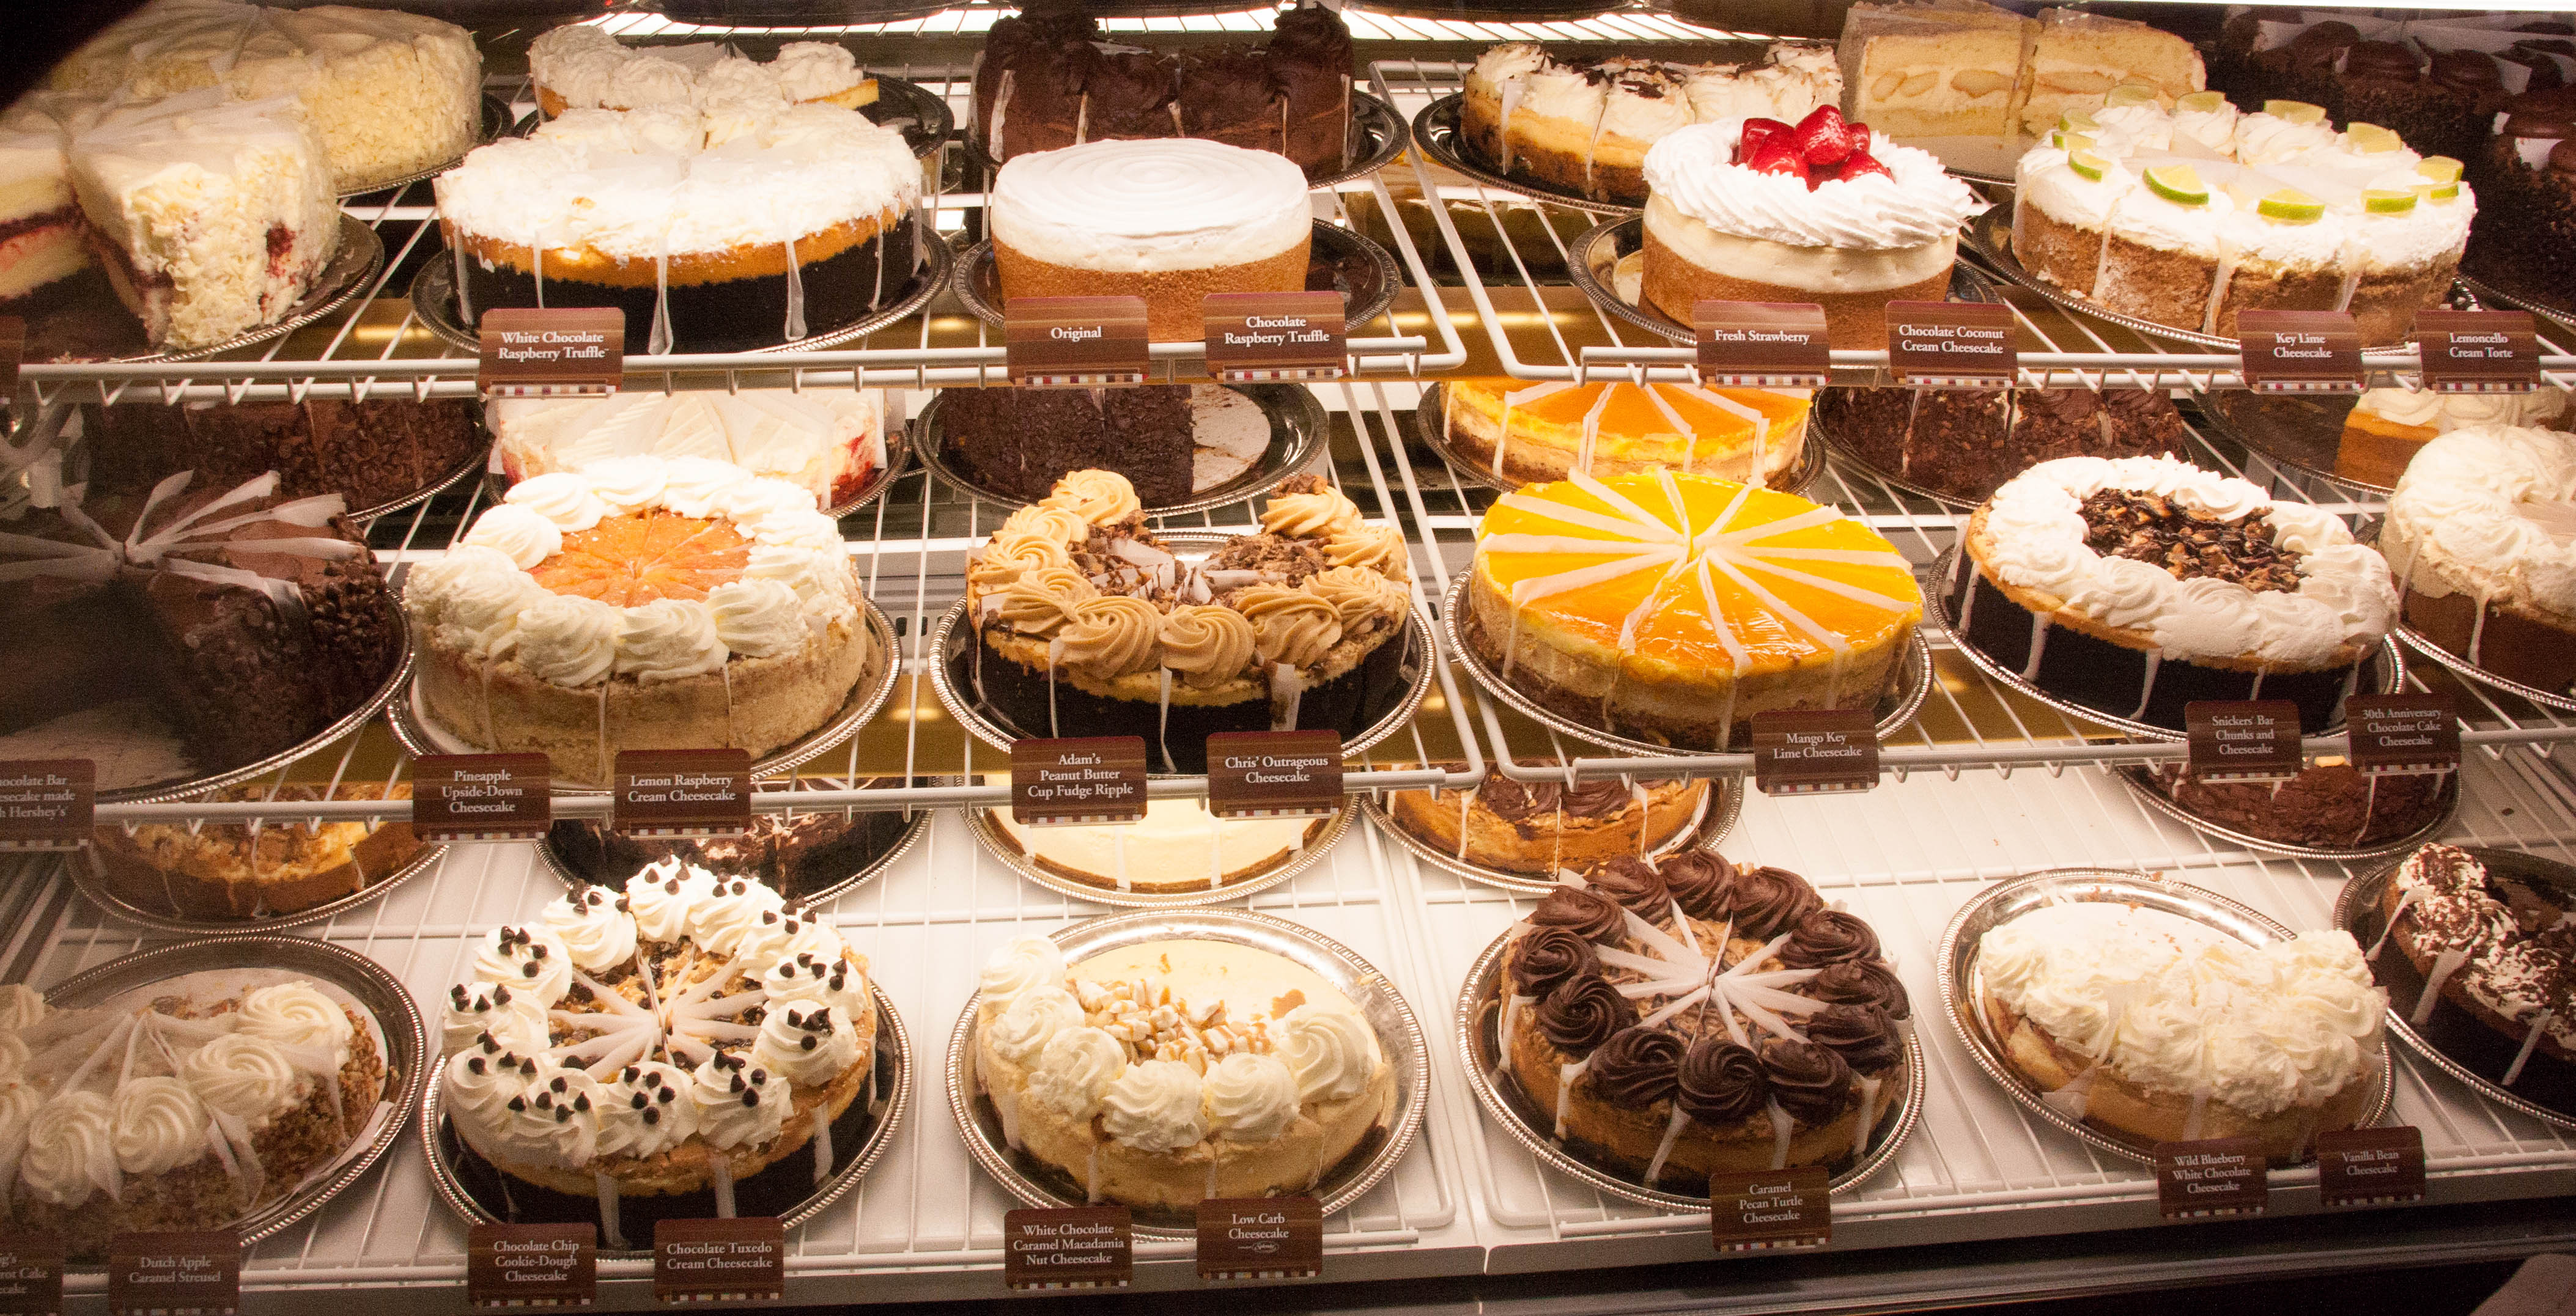 how to order cheesecake from cheesecake factory